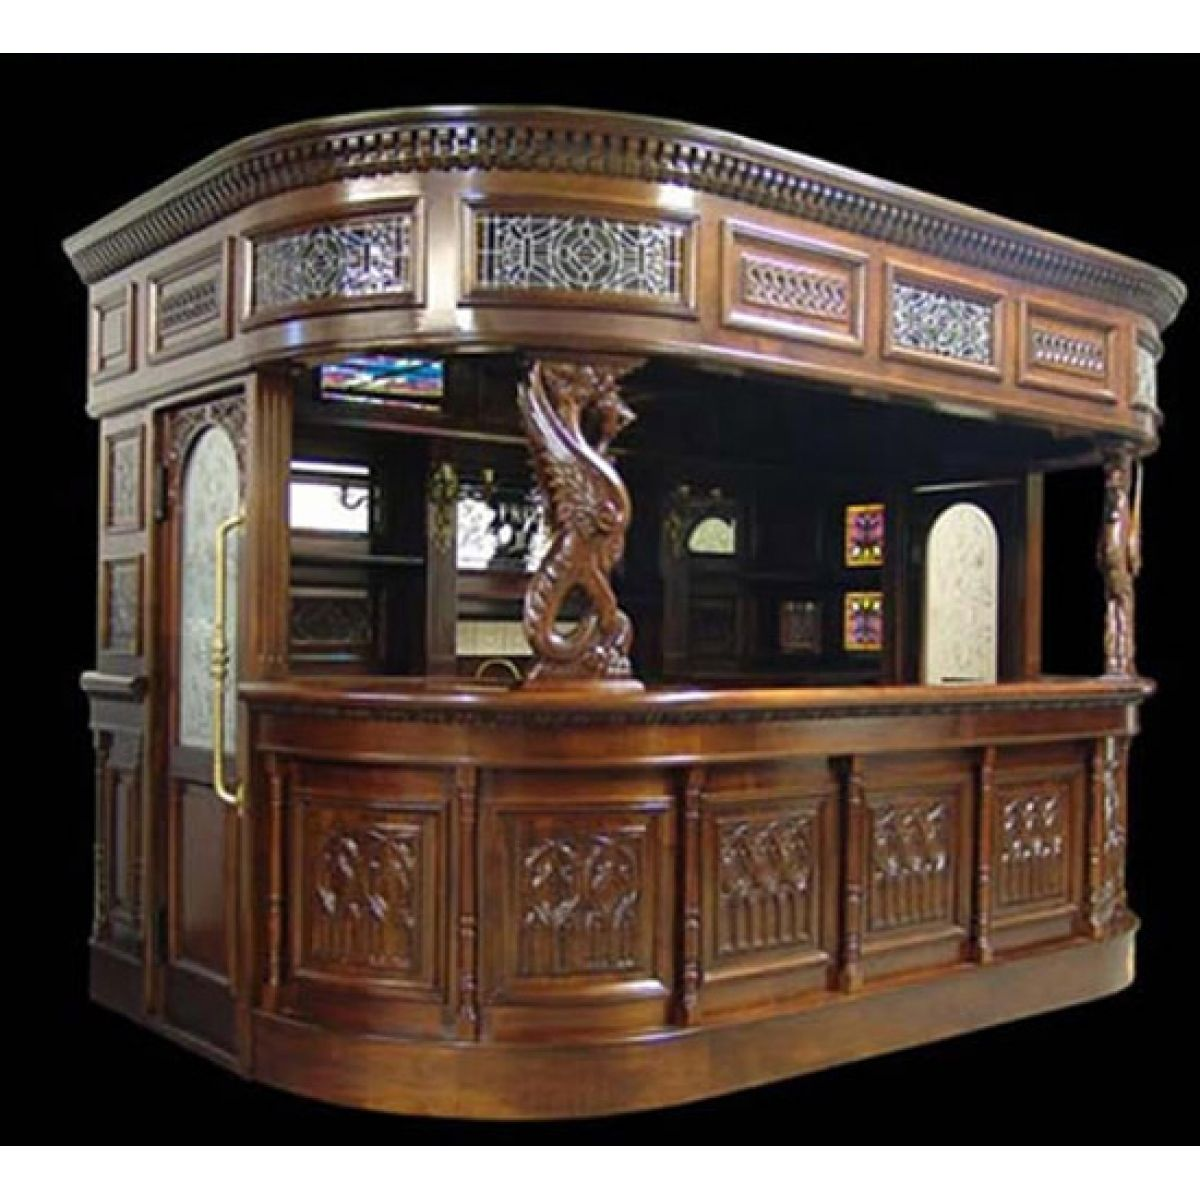 Big canopy home pub bar antique furniture replica counter with sink as is floor model full - Bar canopy designs ...